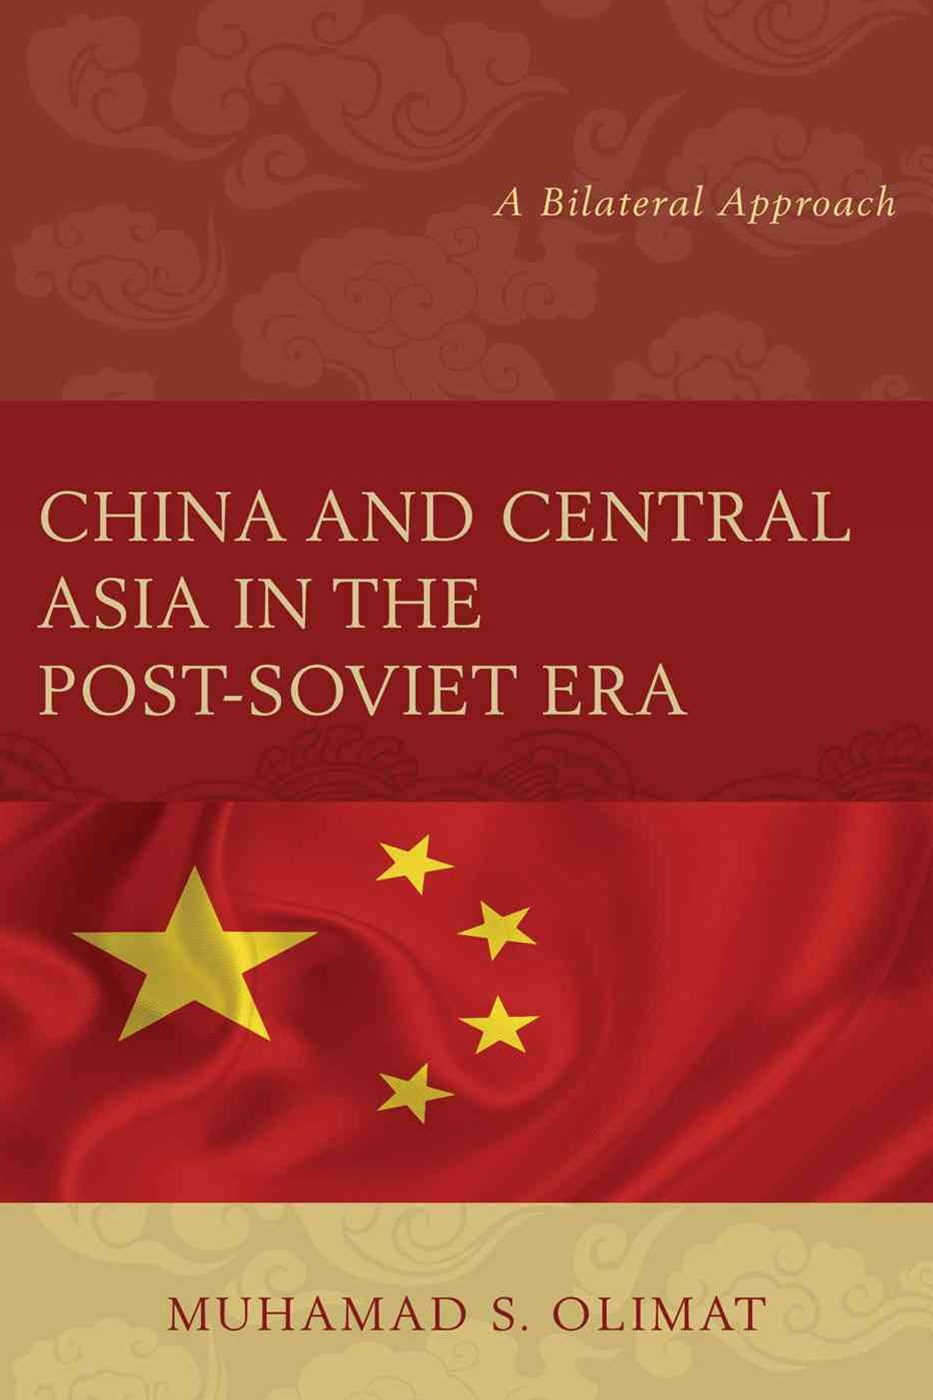 China and Central Asia in the Post-Soviet Era